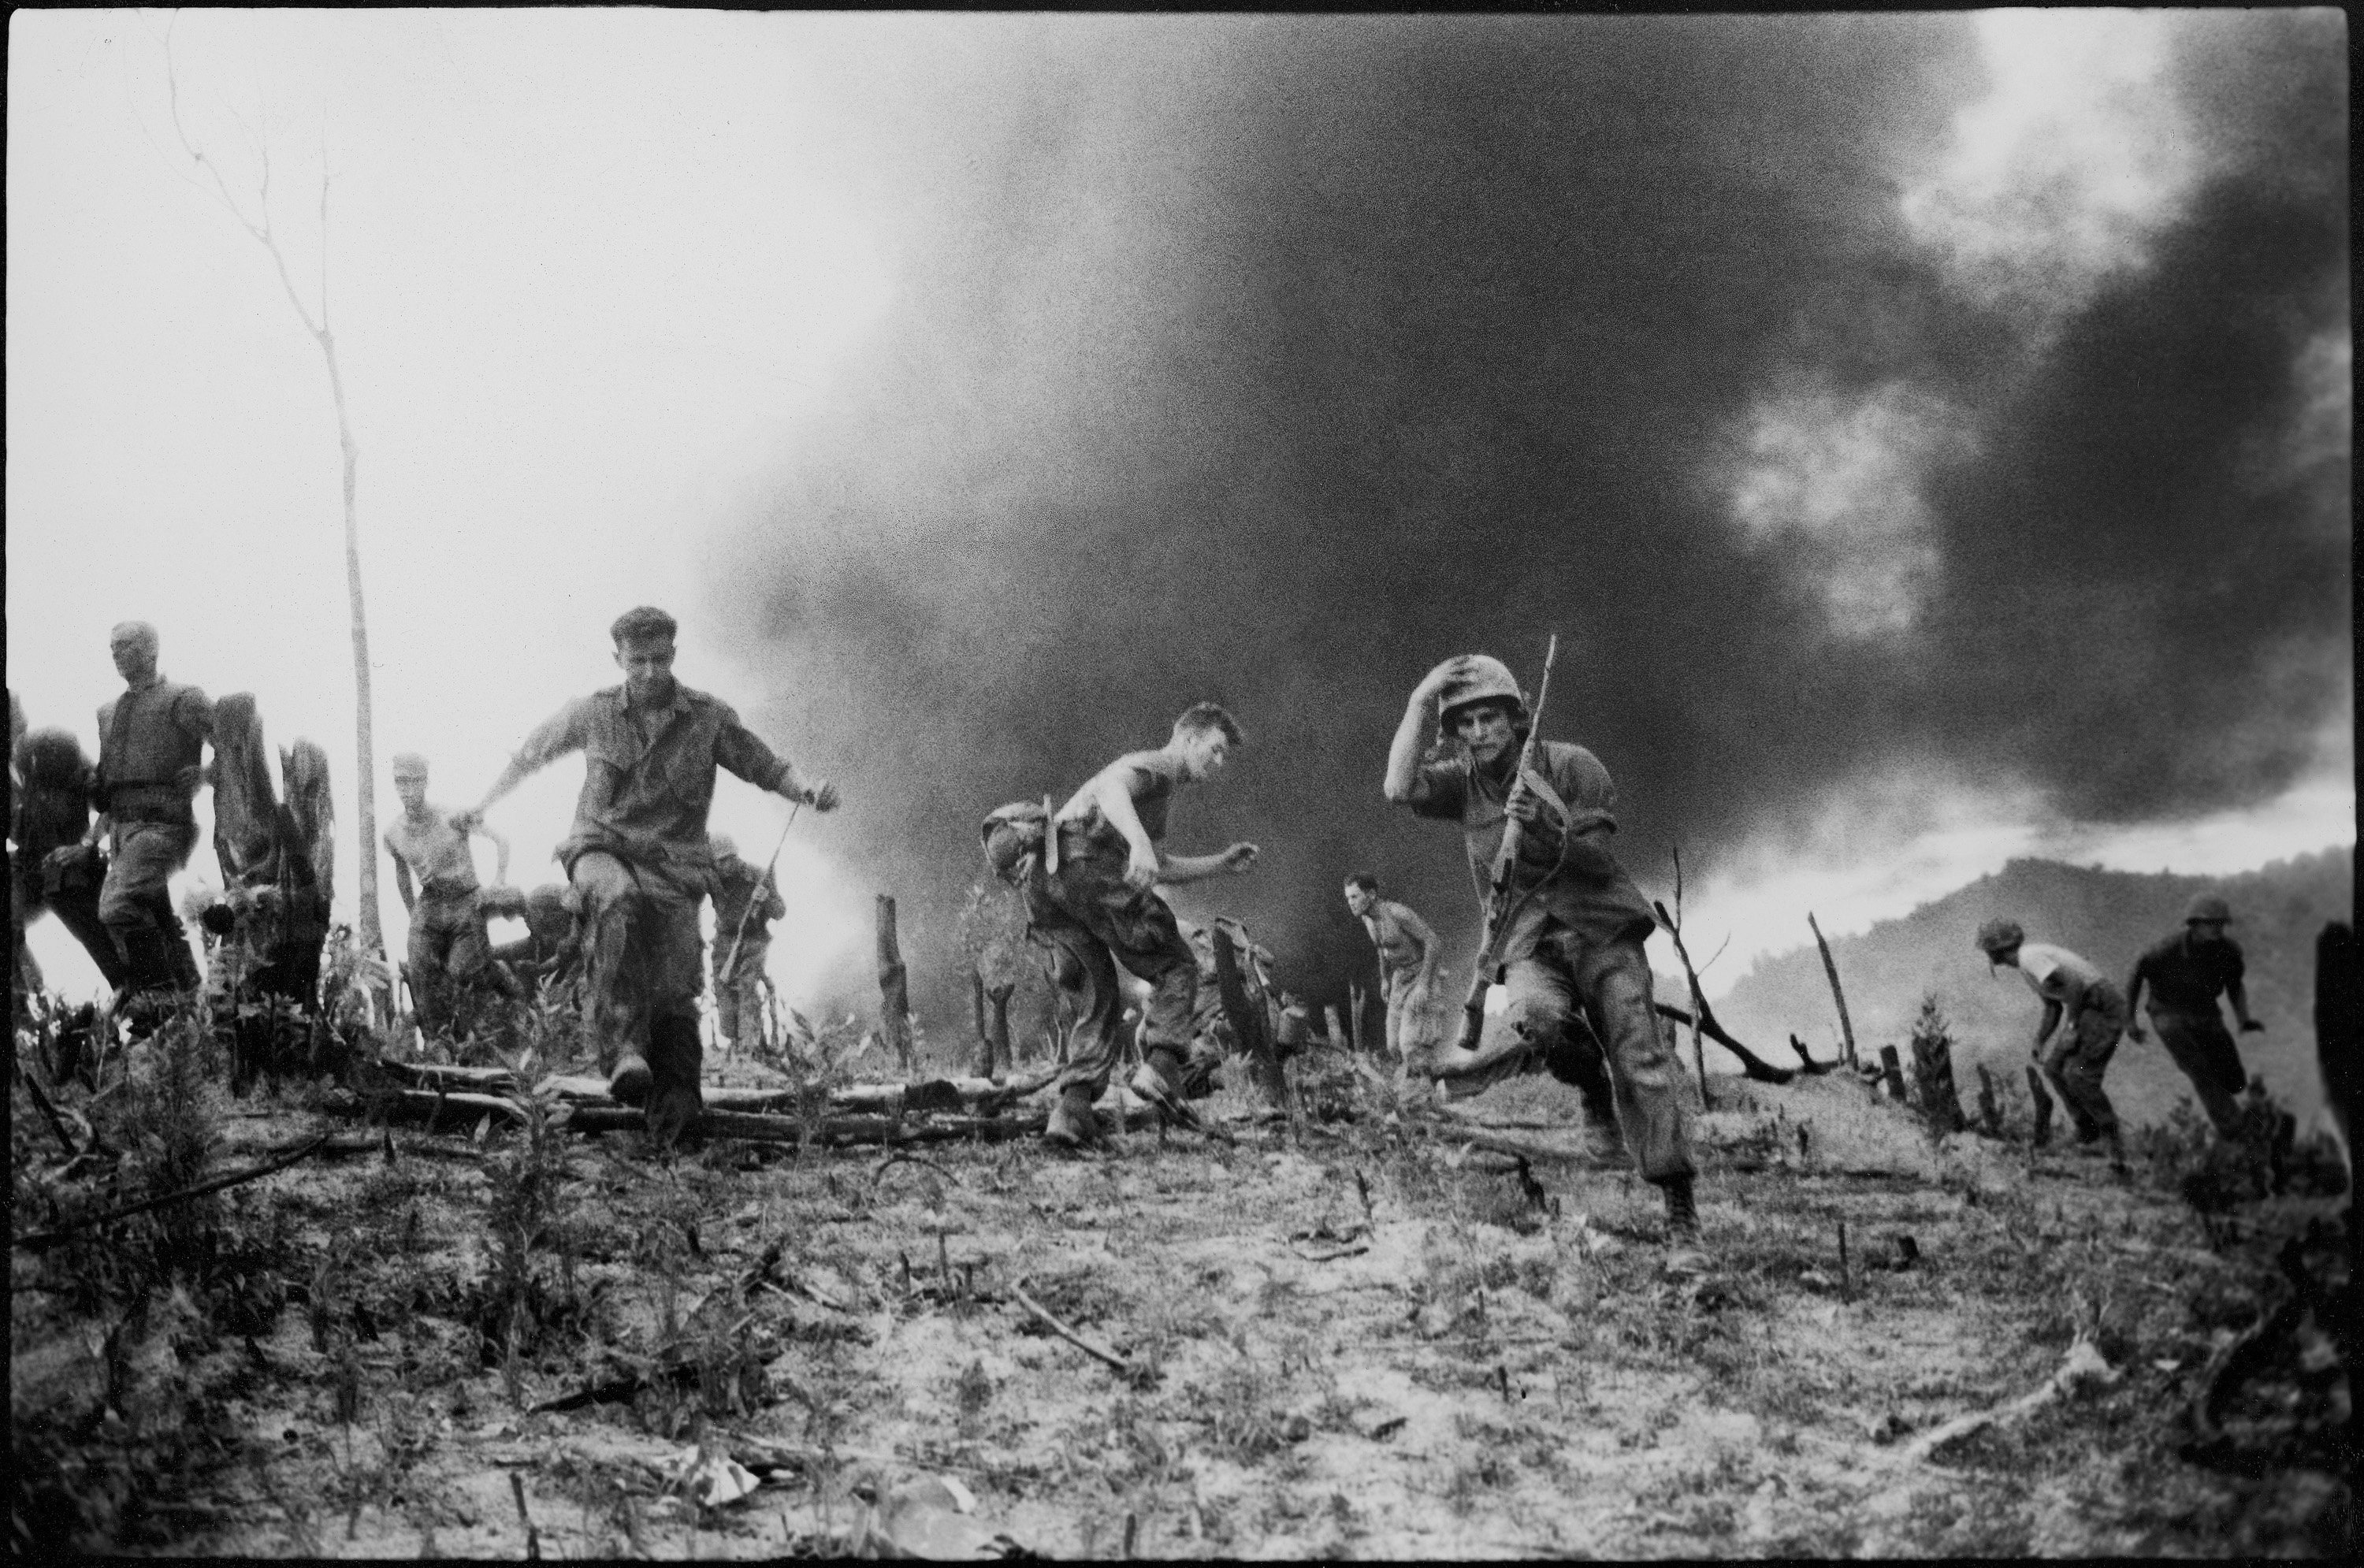 U.S. Marines scatter as a CH-46 helicopter burns, background, after it was shot down near the demilitarized zone (DMZ) between North and South Vietnam, July 15, 1966. (AP Photo)